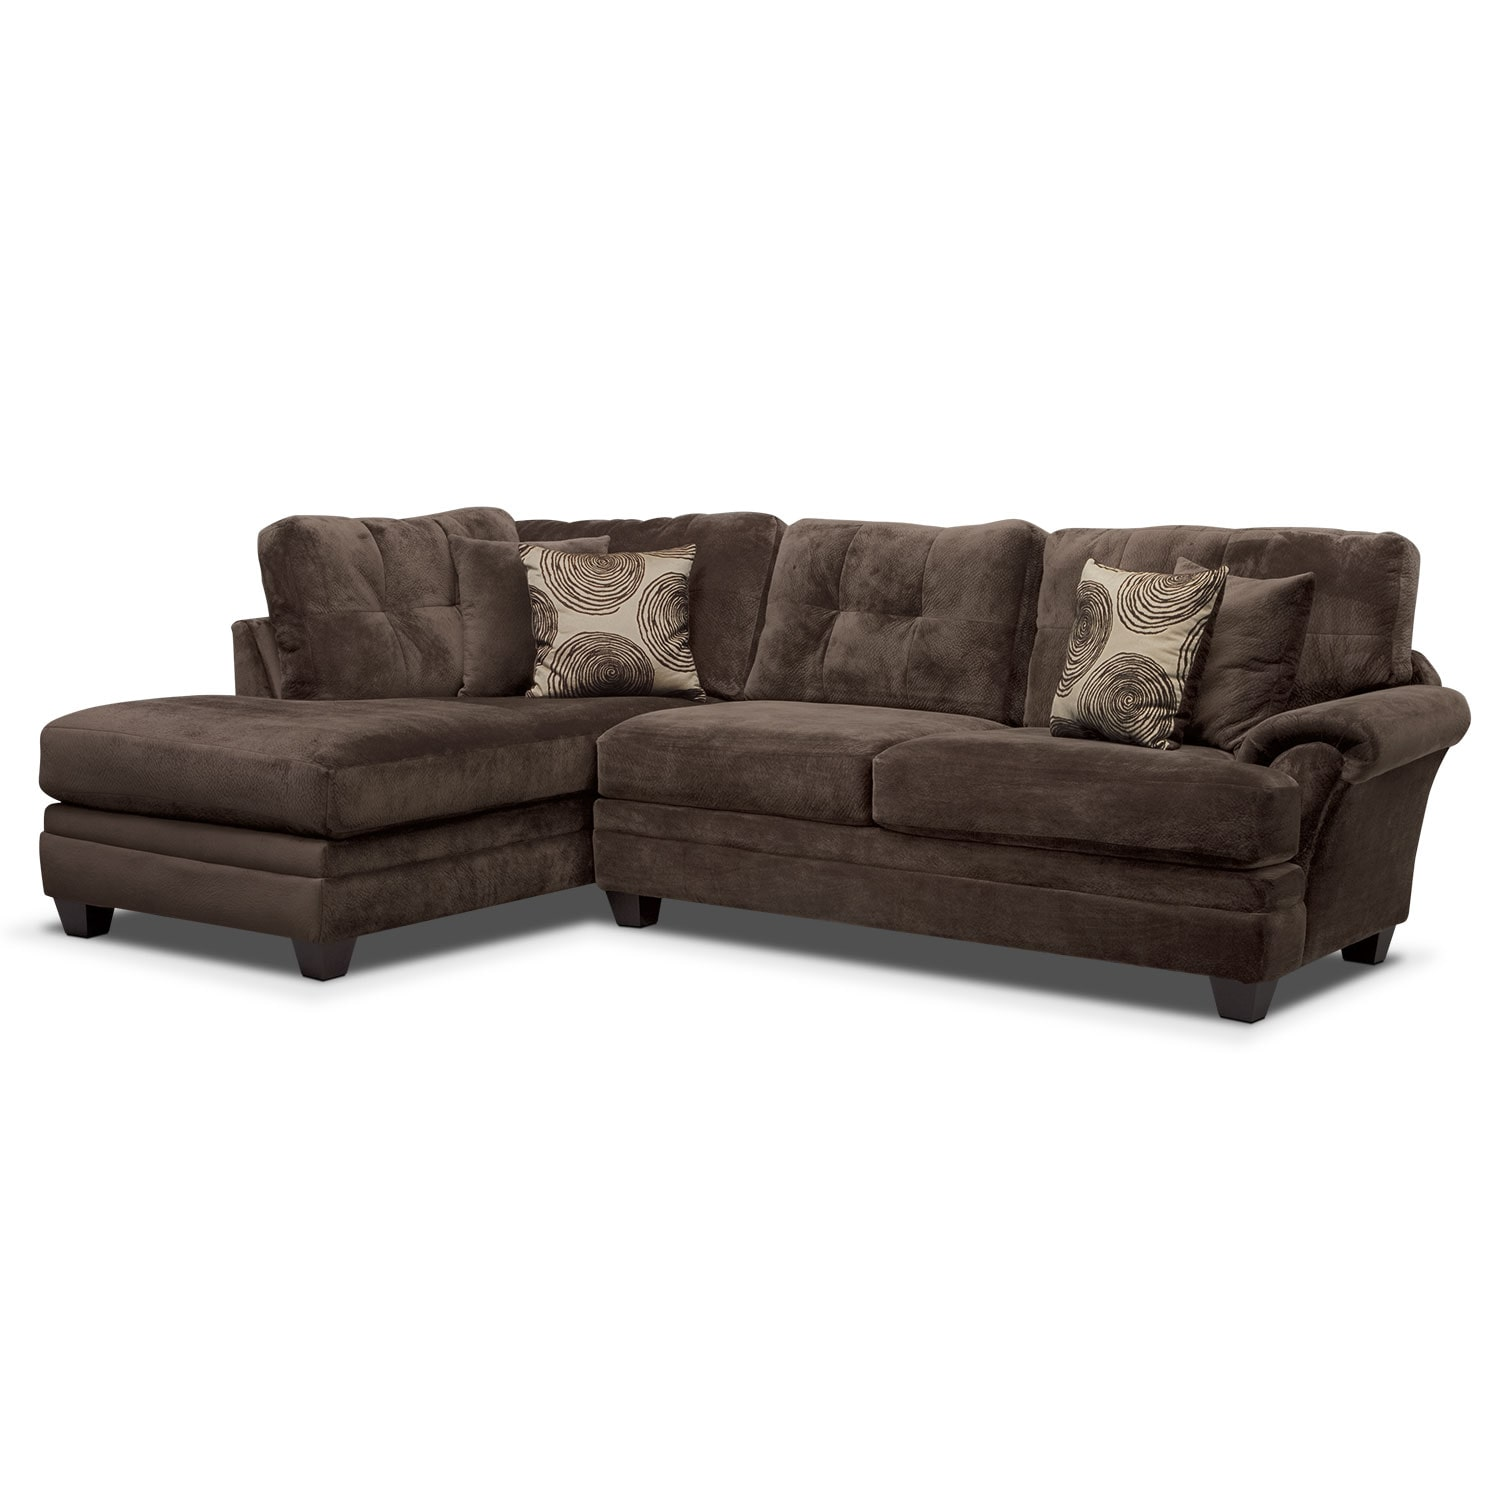 Cordelle 2 piece left facing chaise sectional chocolate for 2 piece sectional with chaise lounge